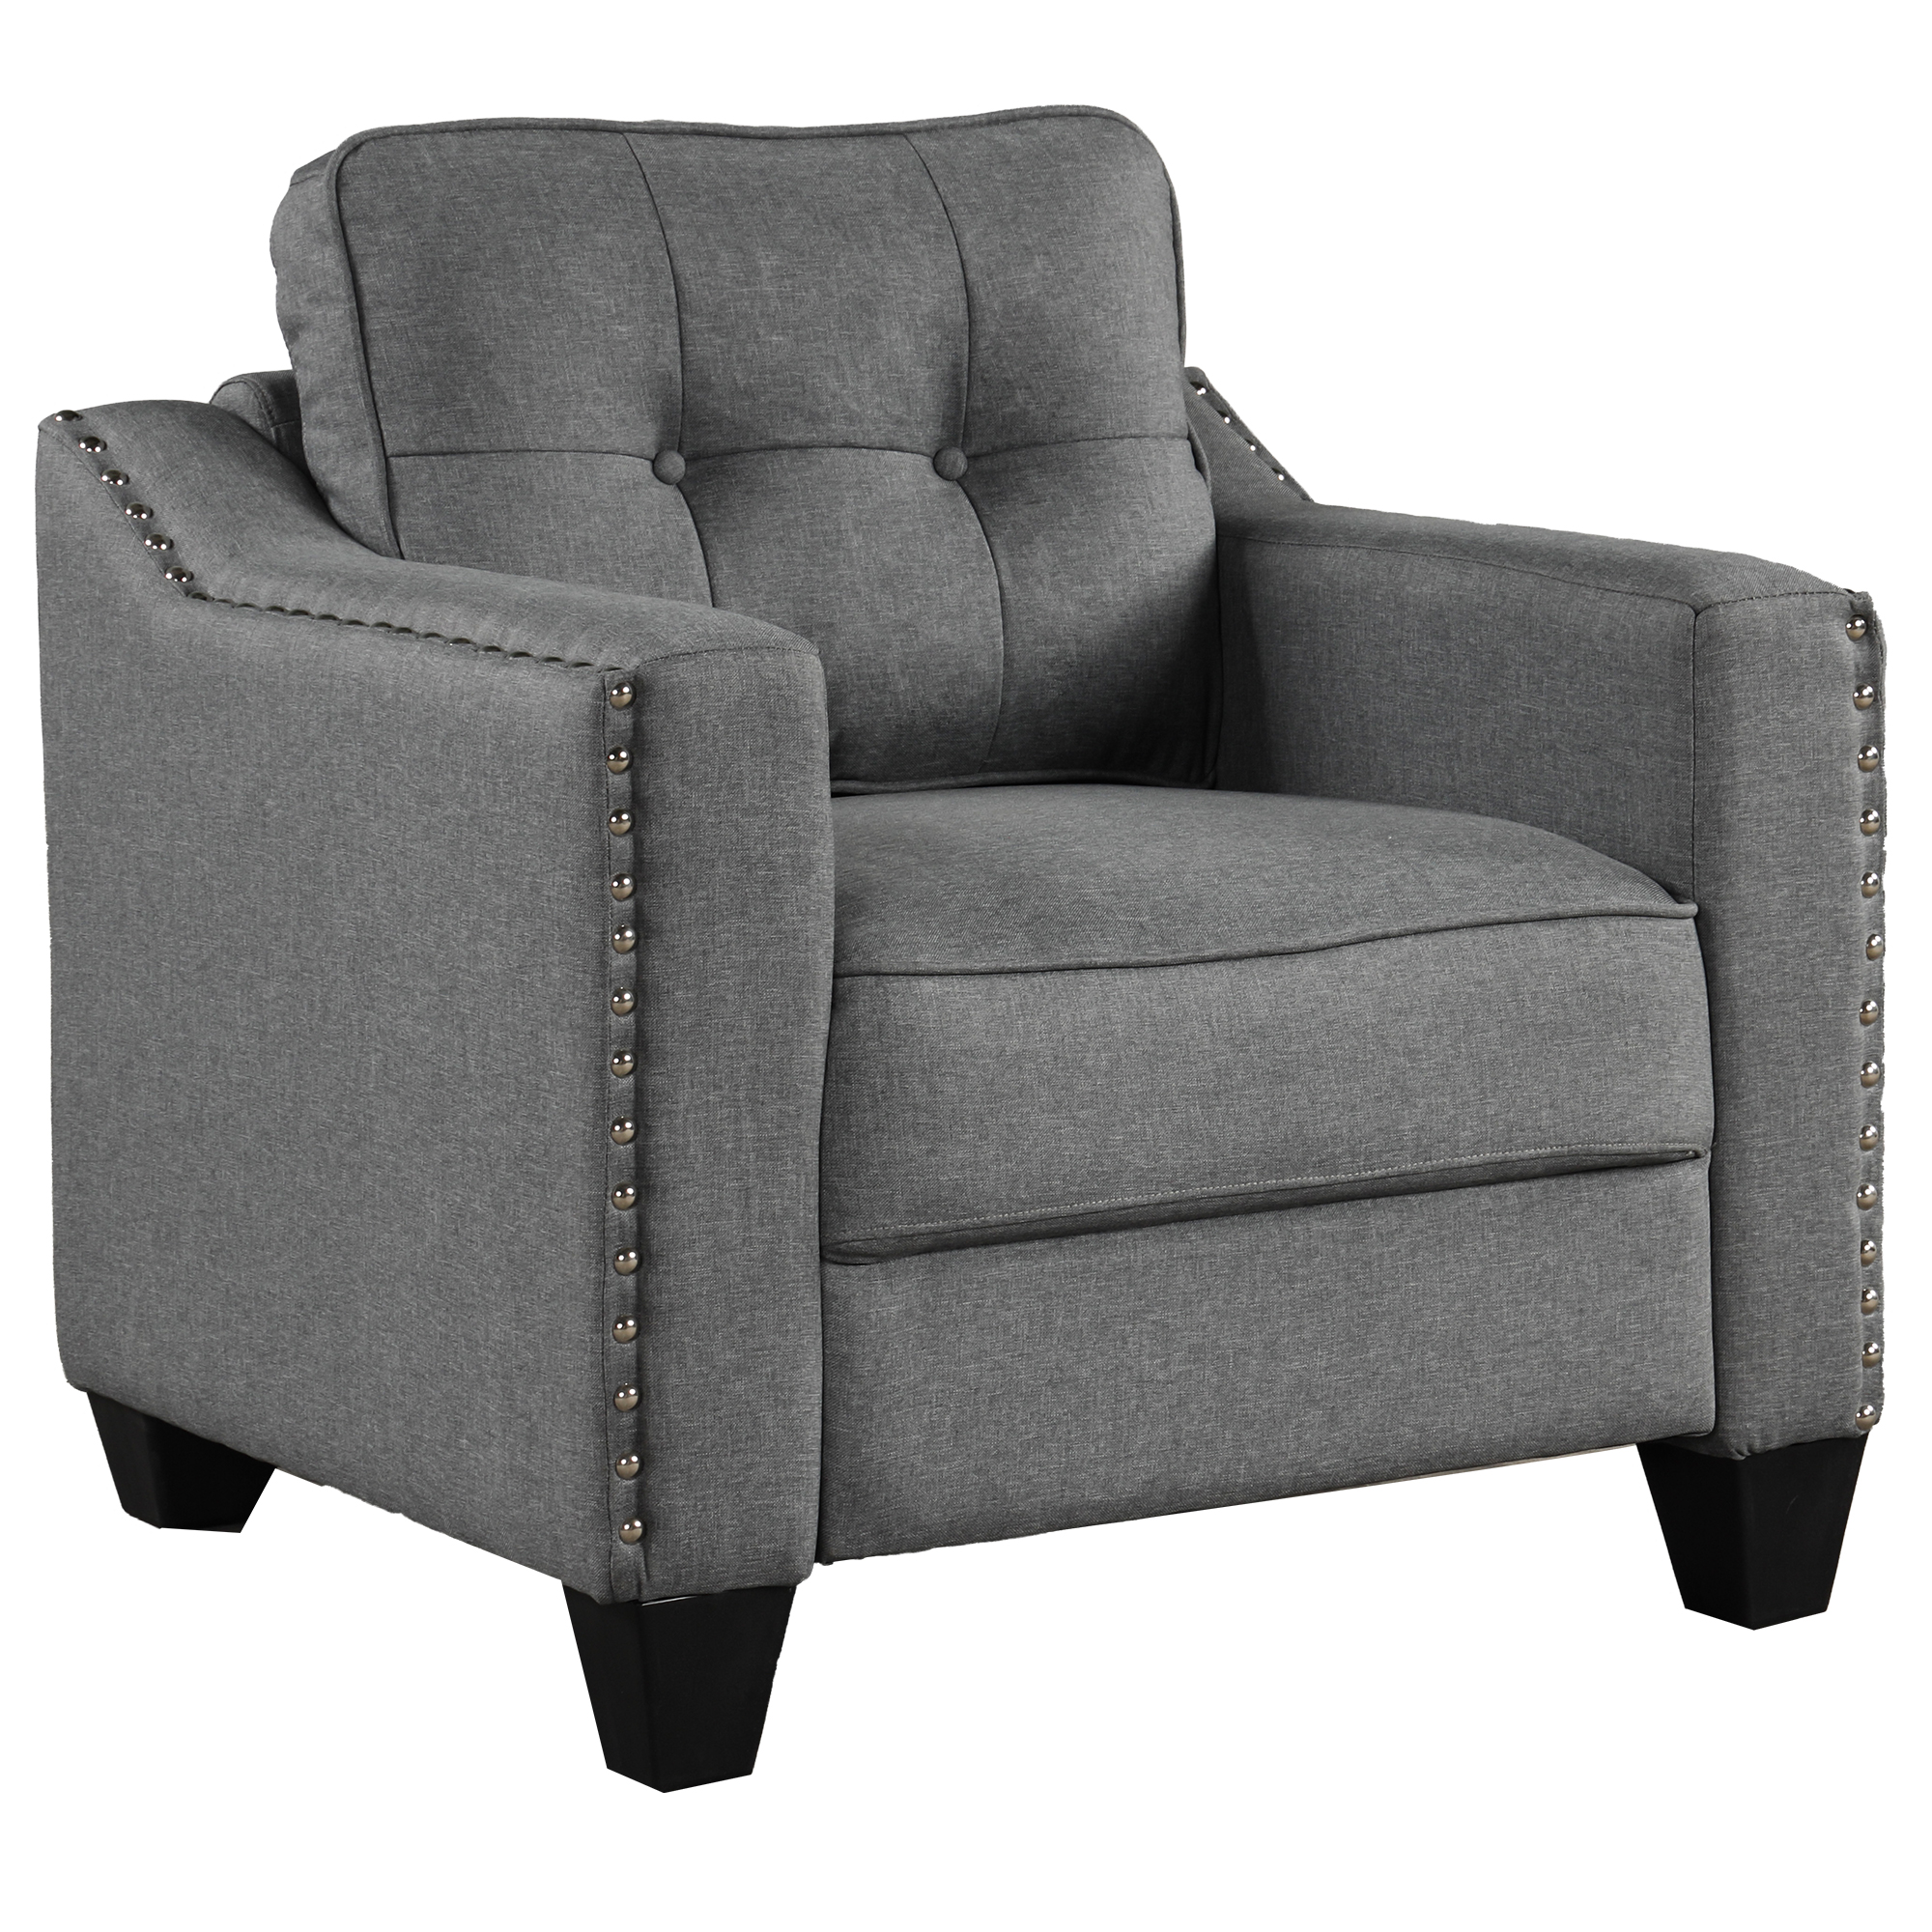 3 Piece Living Room Set With Tufted Cushions